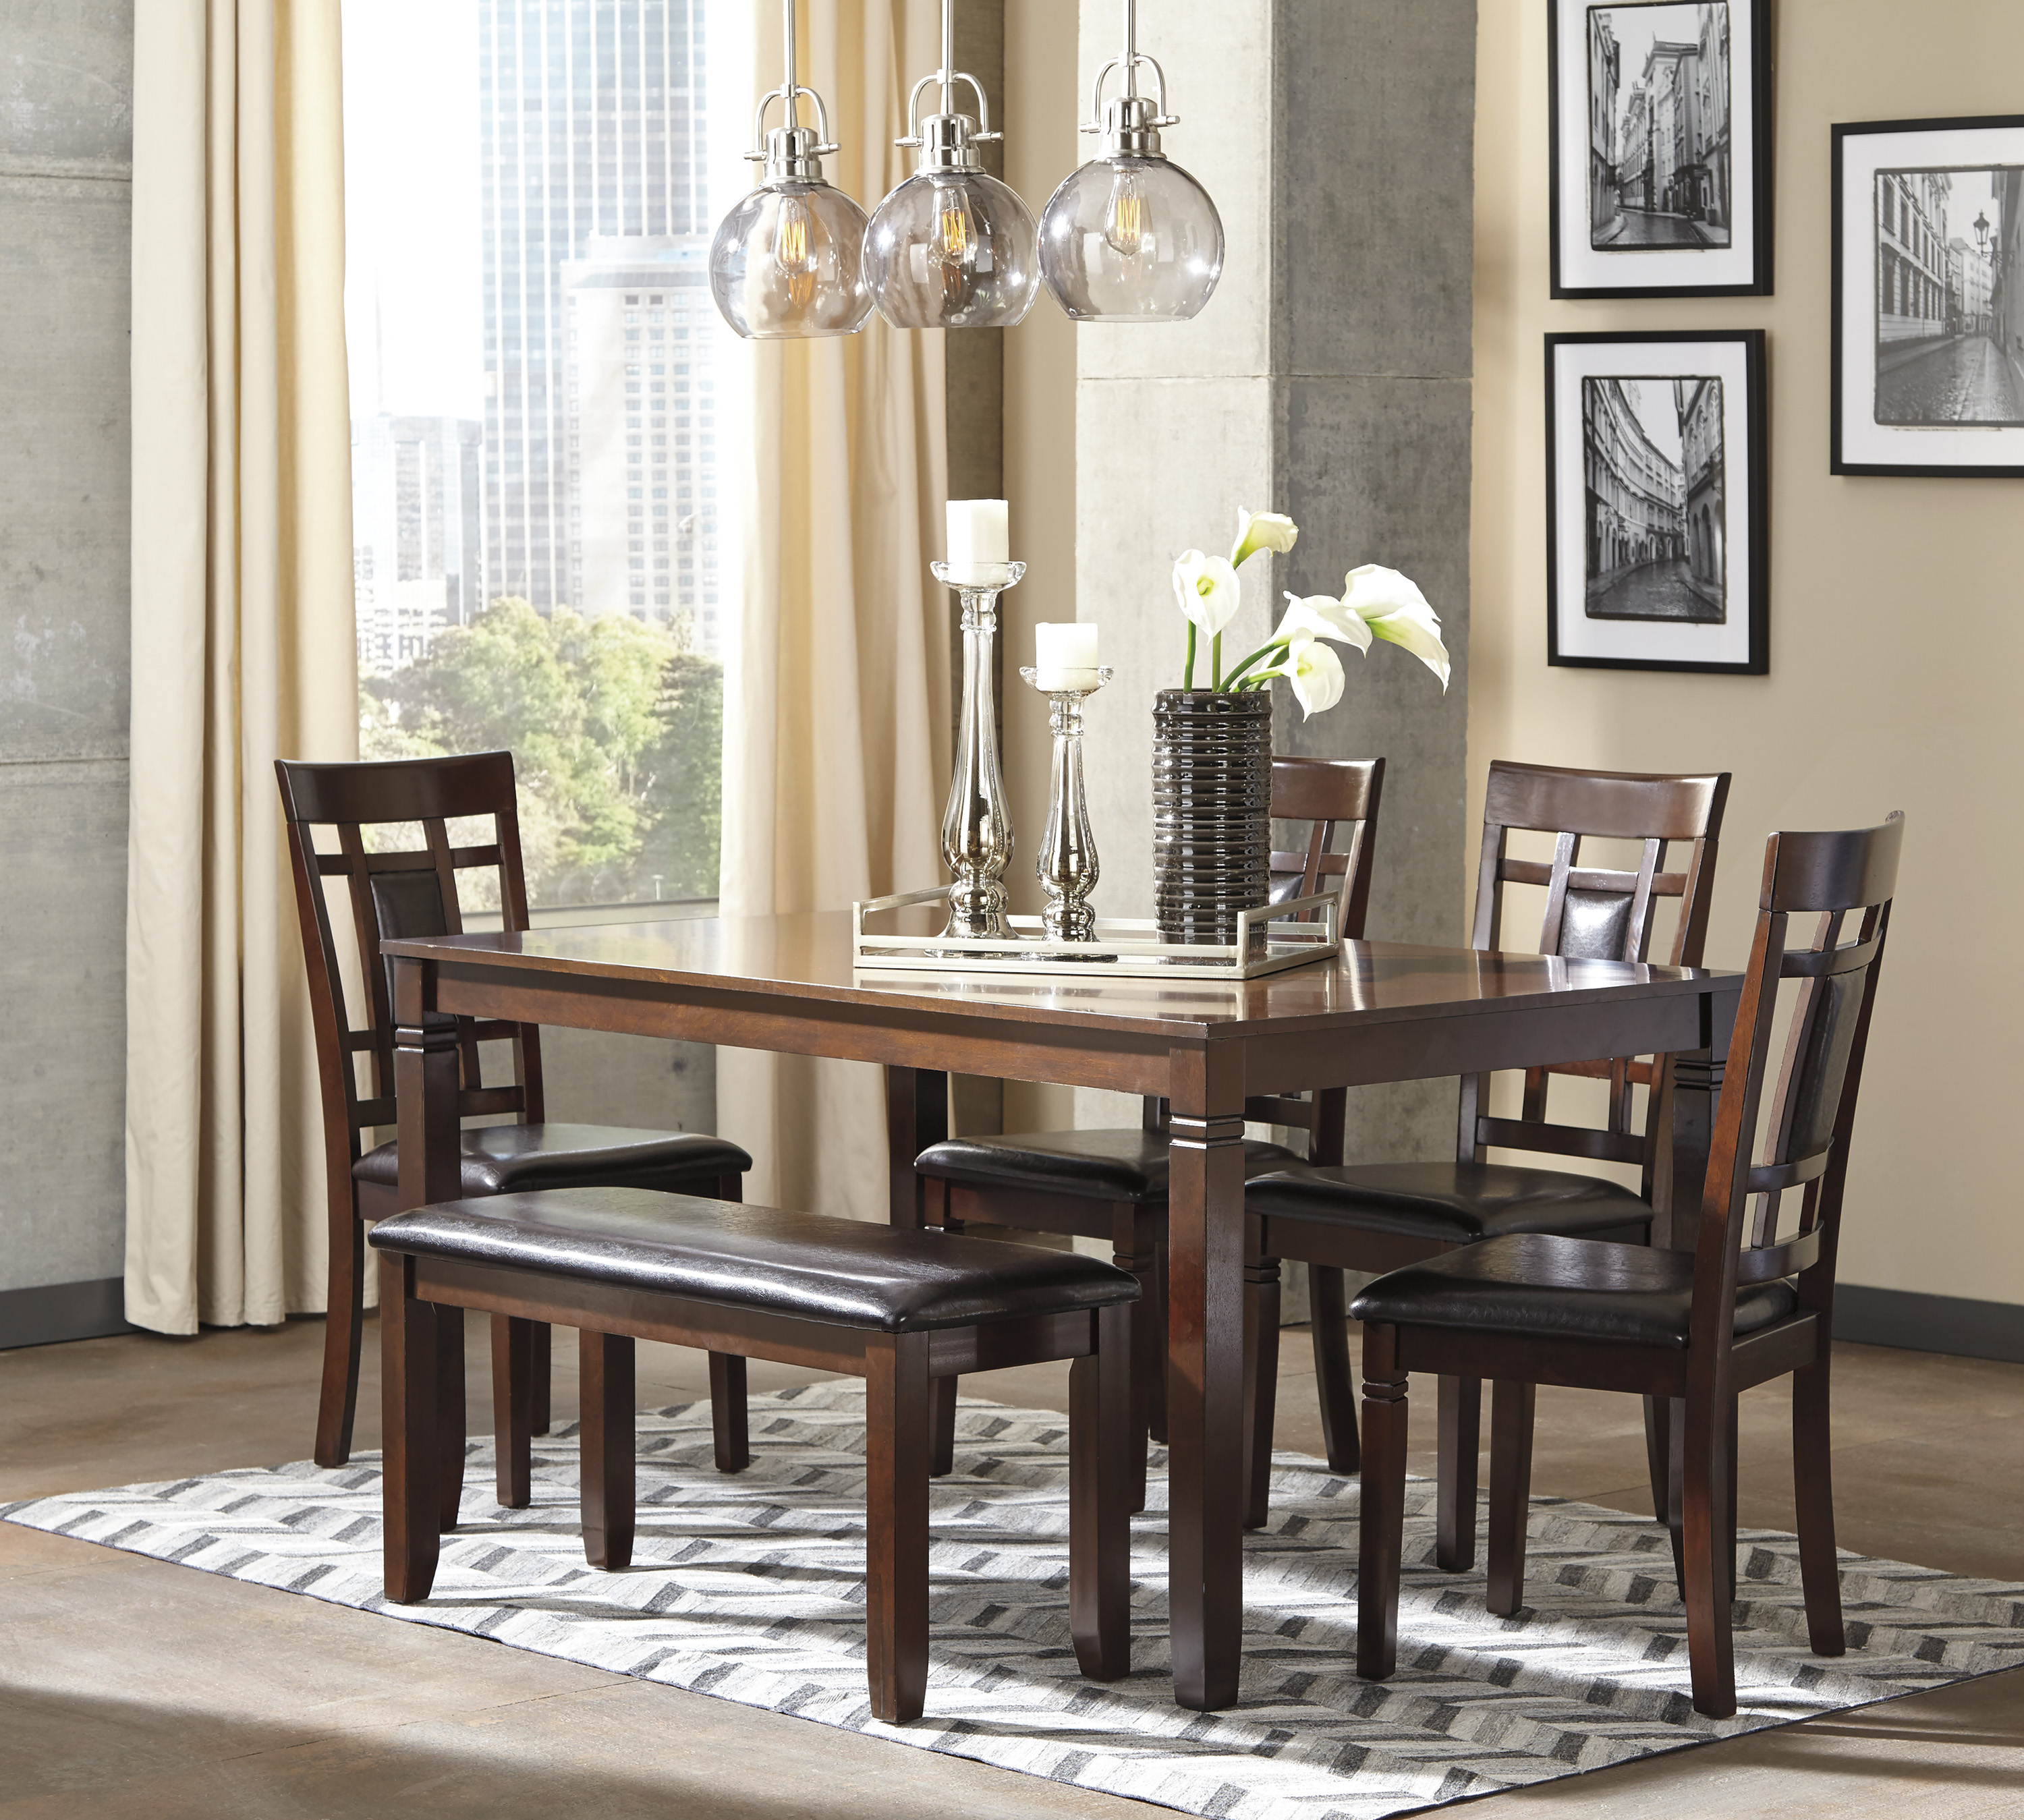 Bennox Brown Dining Room Table, Four Cha.